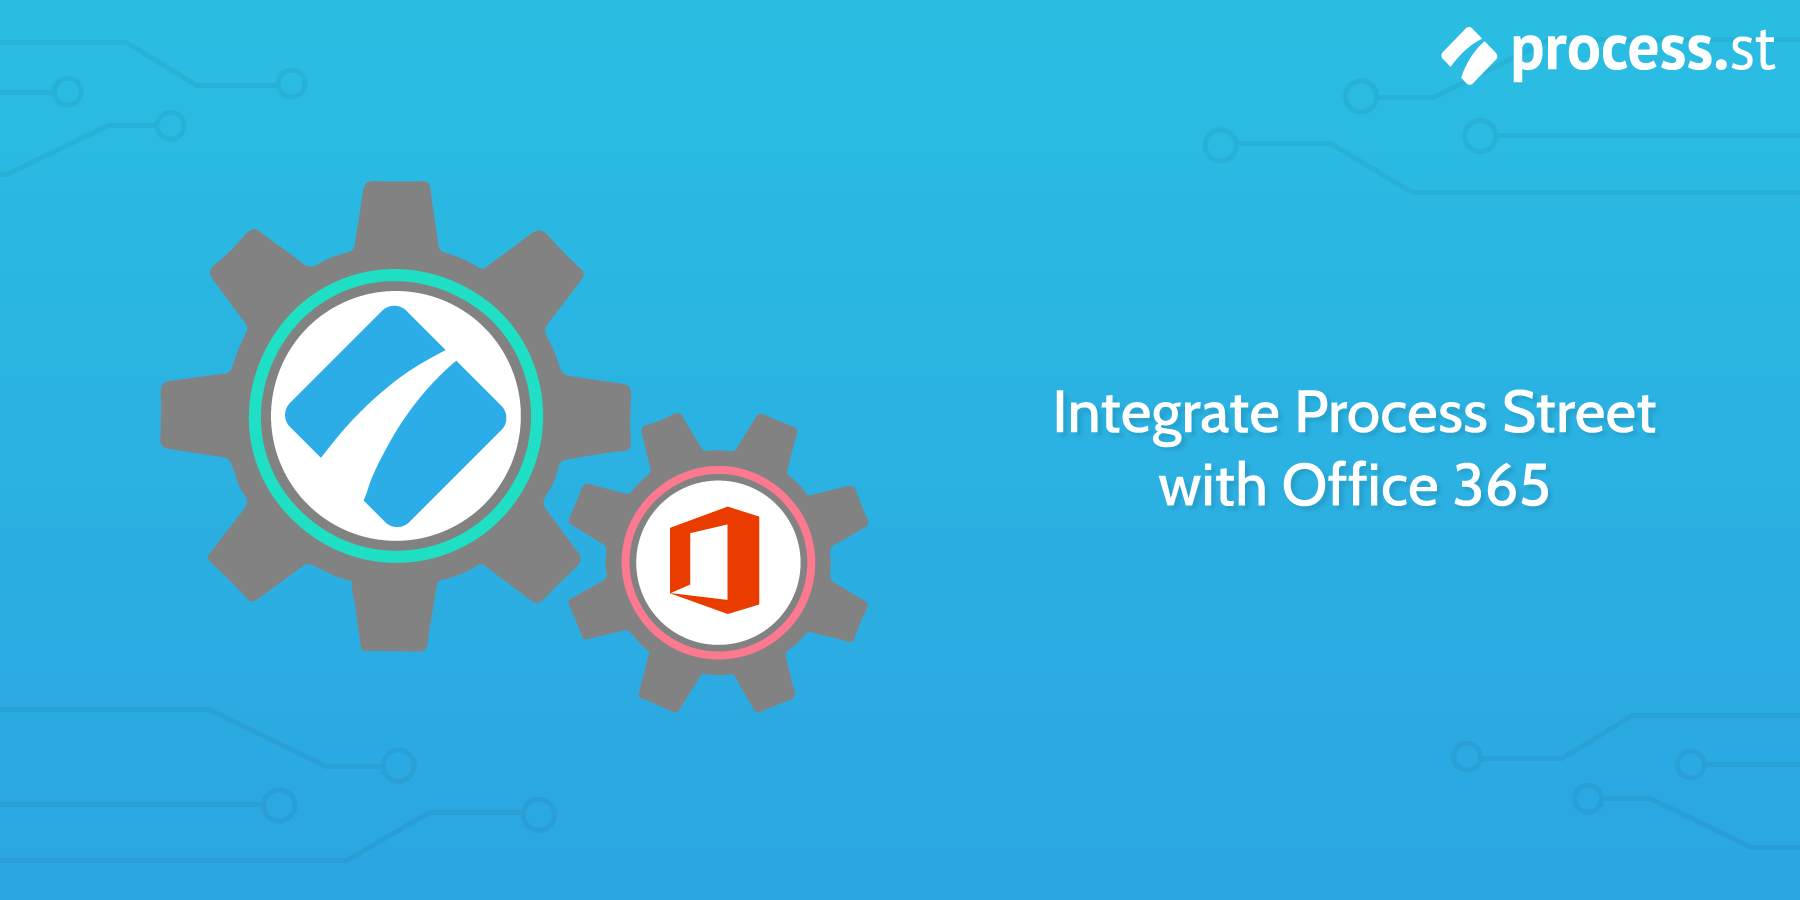 Integrate Process Street With Office 365